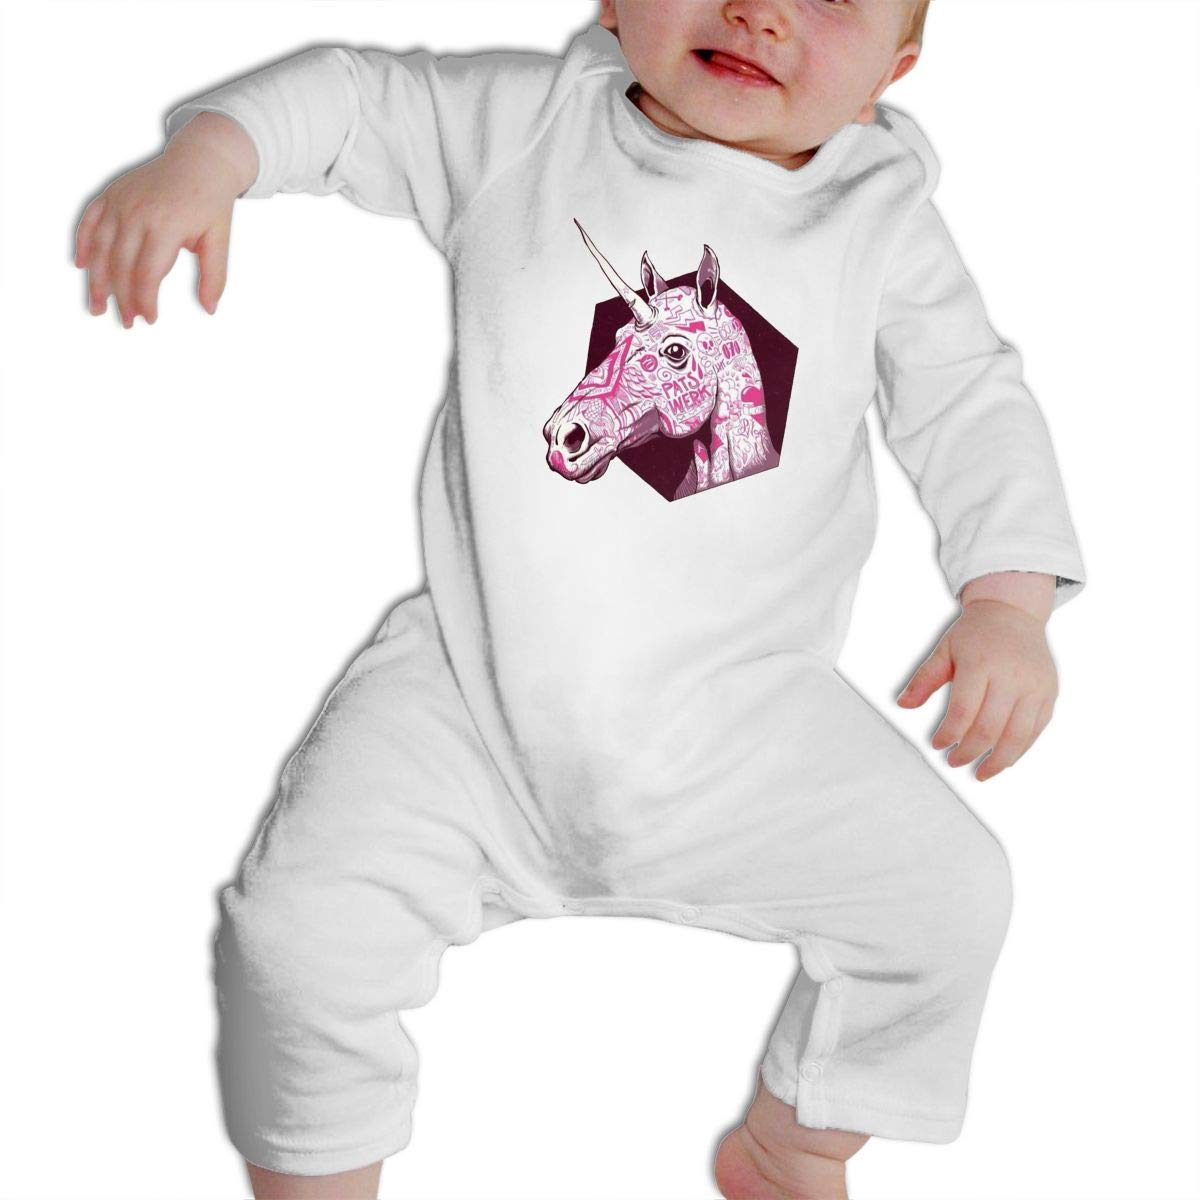 Cami Pink Unicorn Baby Boys Girls Long Sleeve Onesies Infant Bodysuit Baby For 6-24months